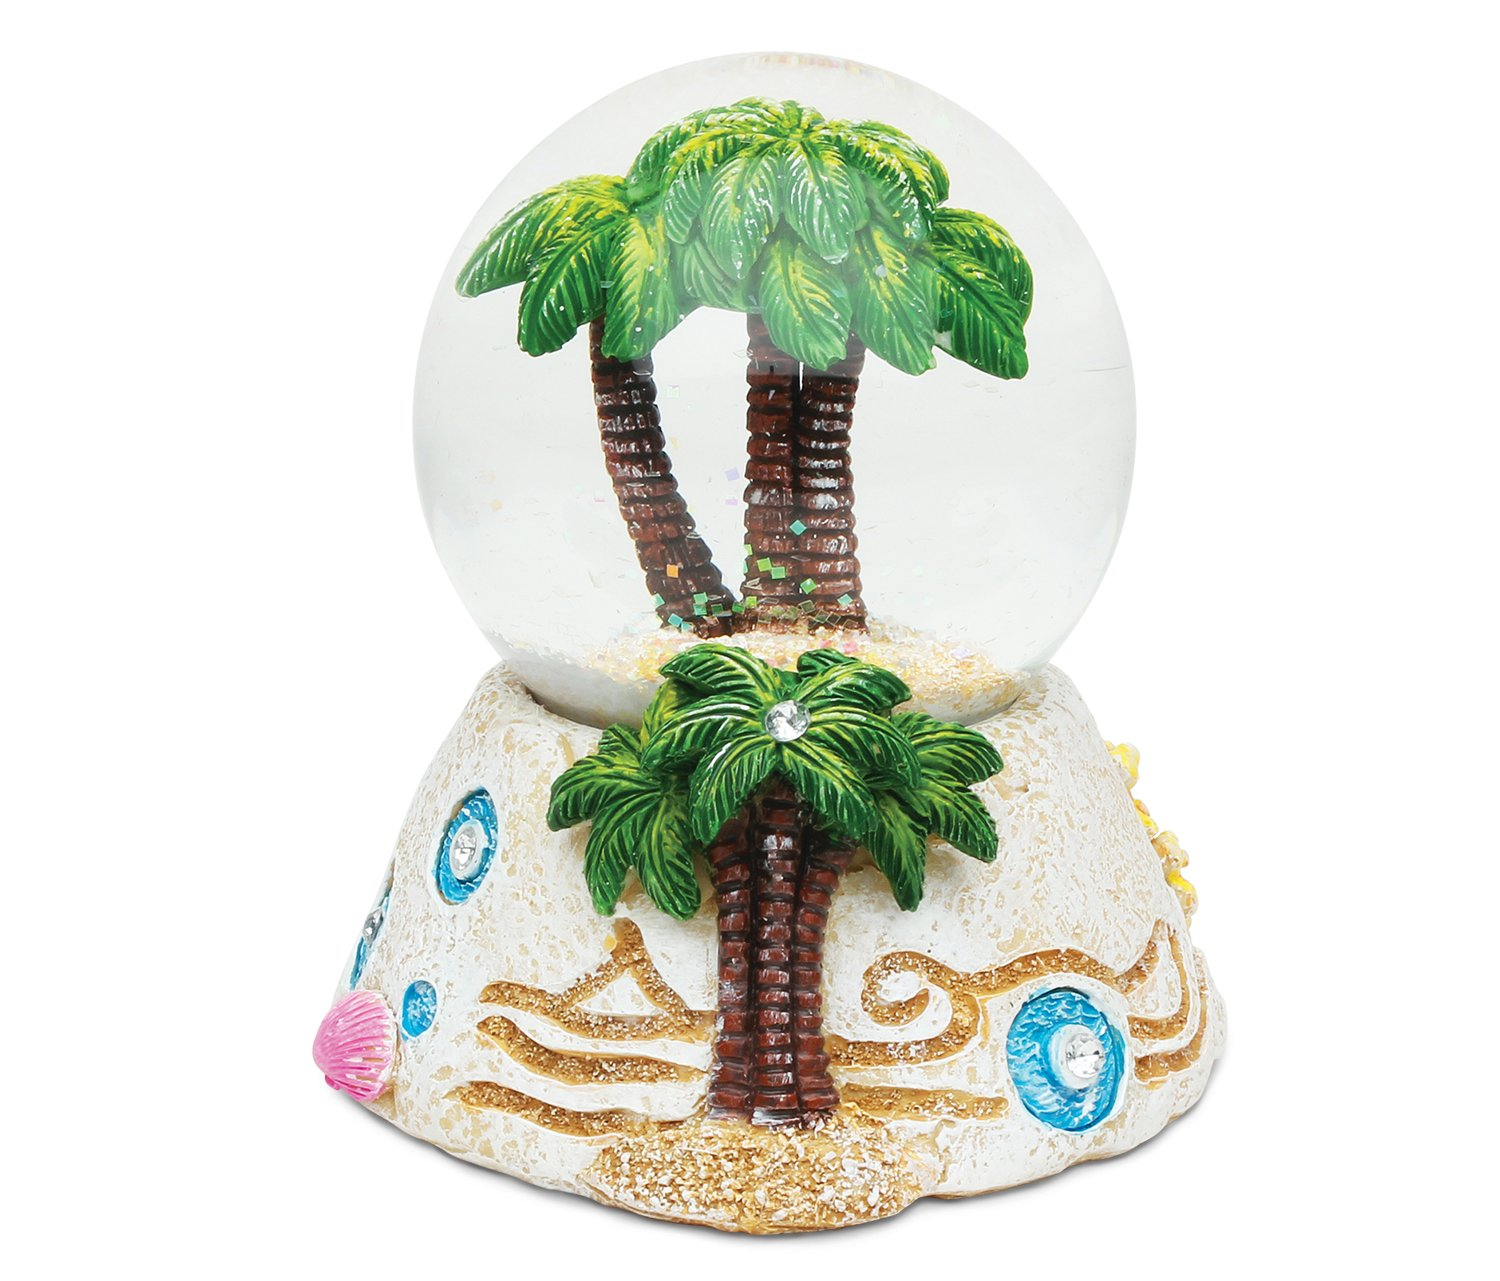 COTA Global Palm Tree Snow Globe Dome Resin Beach Collection Tropical Summer Nautical Theme Hawaiian/Mexican/Bahamas Room Decoration Size: 3.8 x 3.5 x 3.5 inches Unique Gift Toy Display Puzzled Inc.